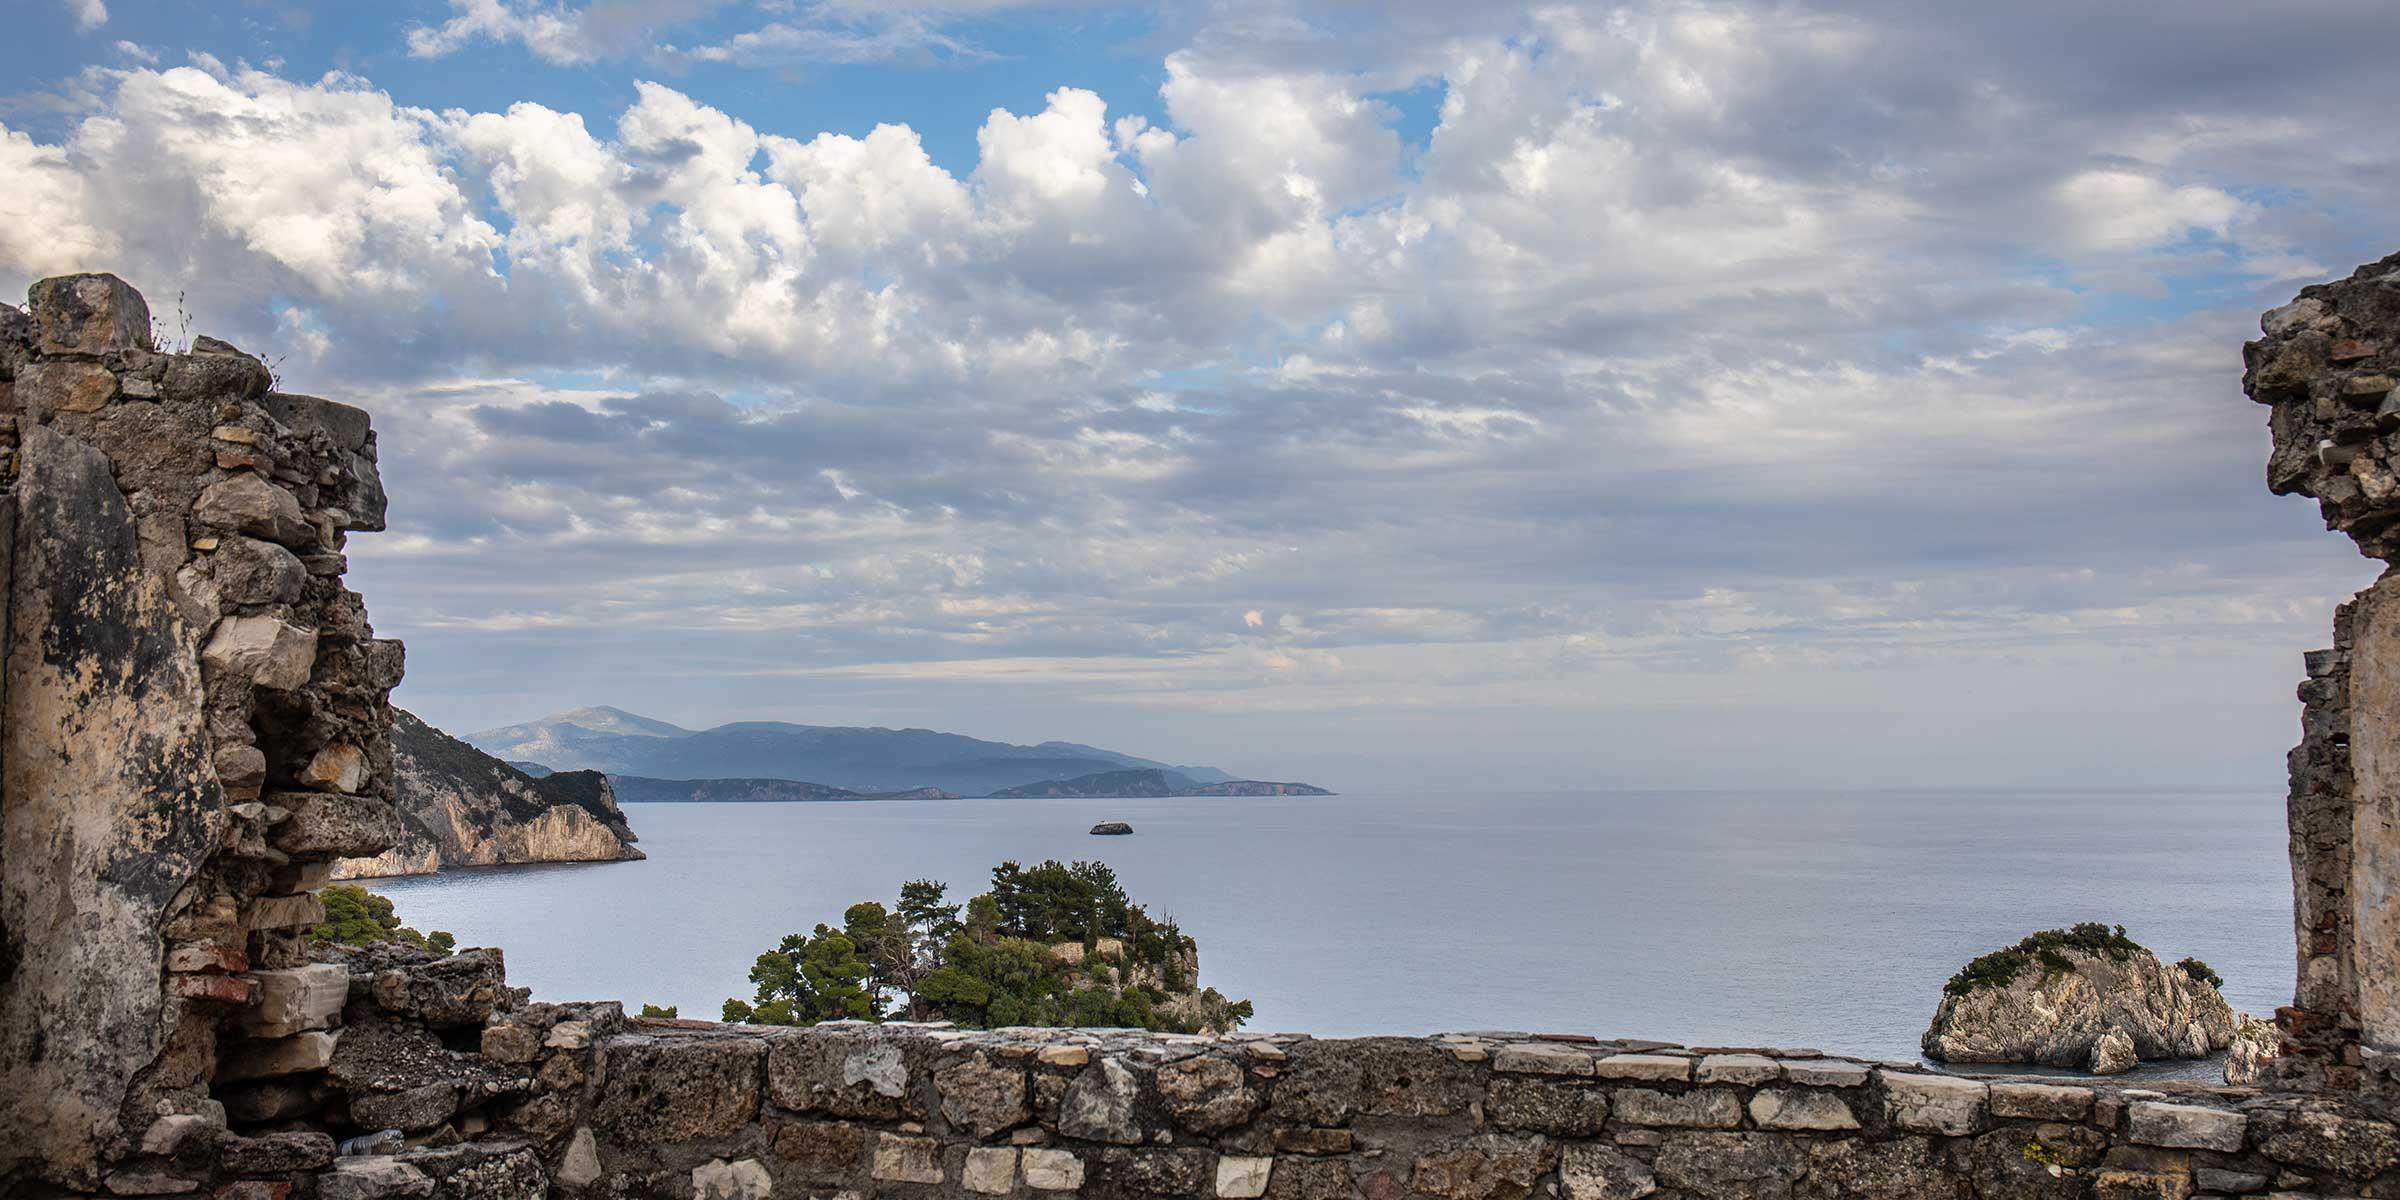 View from castle in Corfu, Greece